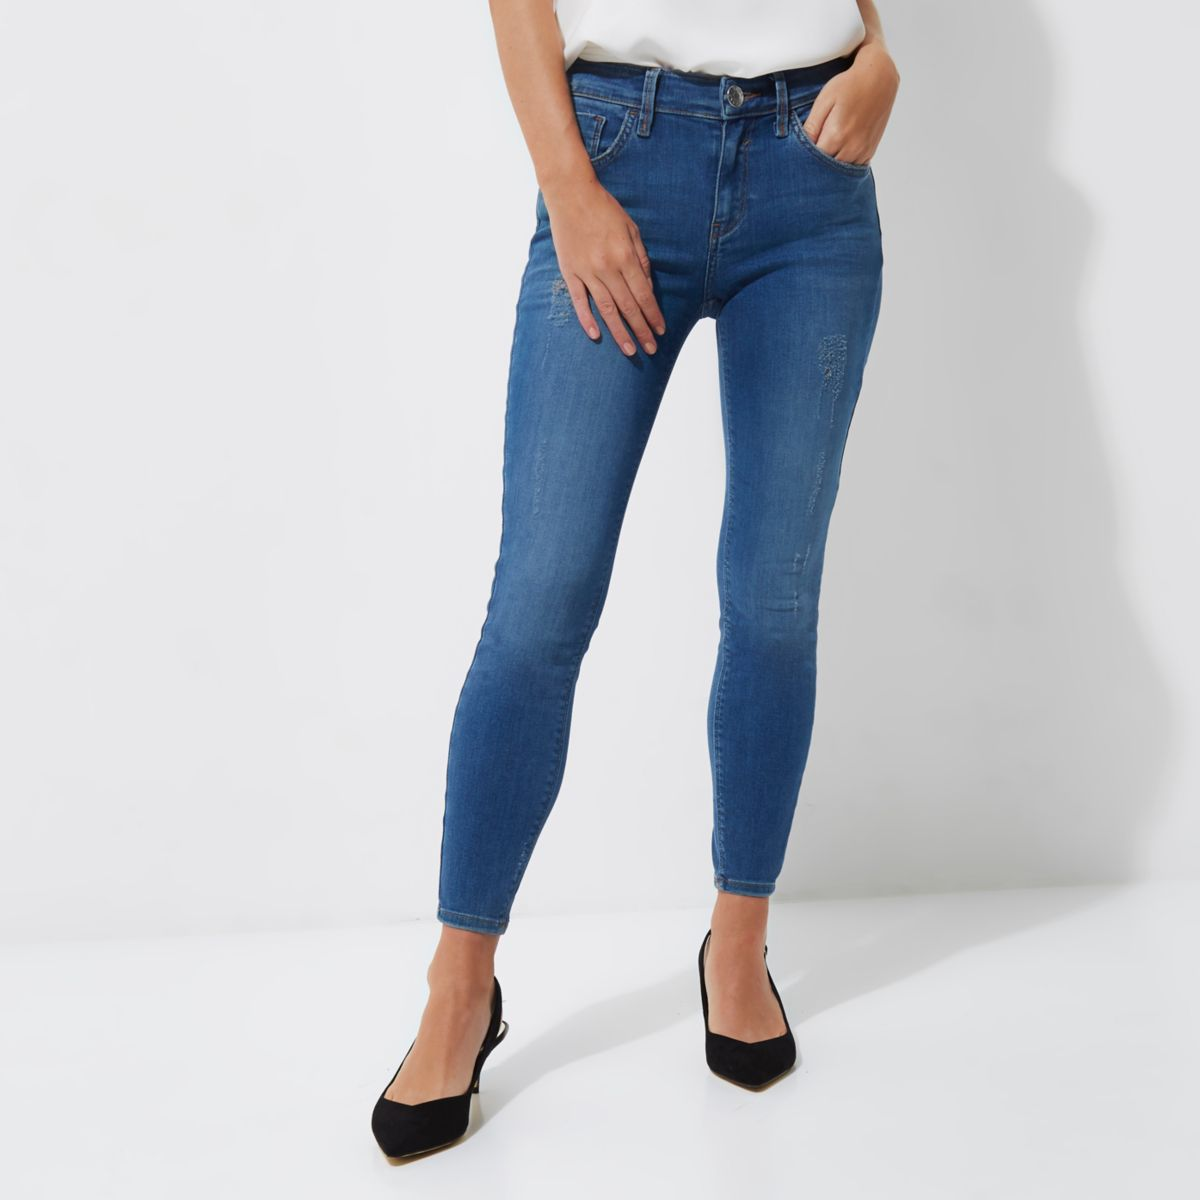 Free shipping on petite jeans for women at bookbestnj.cf Shop for petite-size jeans from the best brands. Totally free shipping and returns.